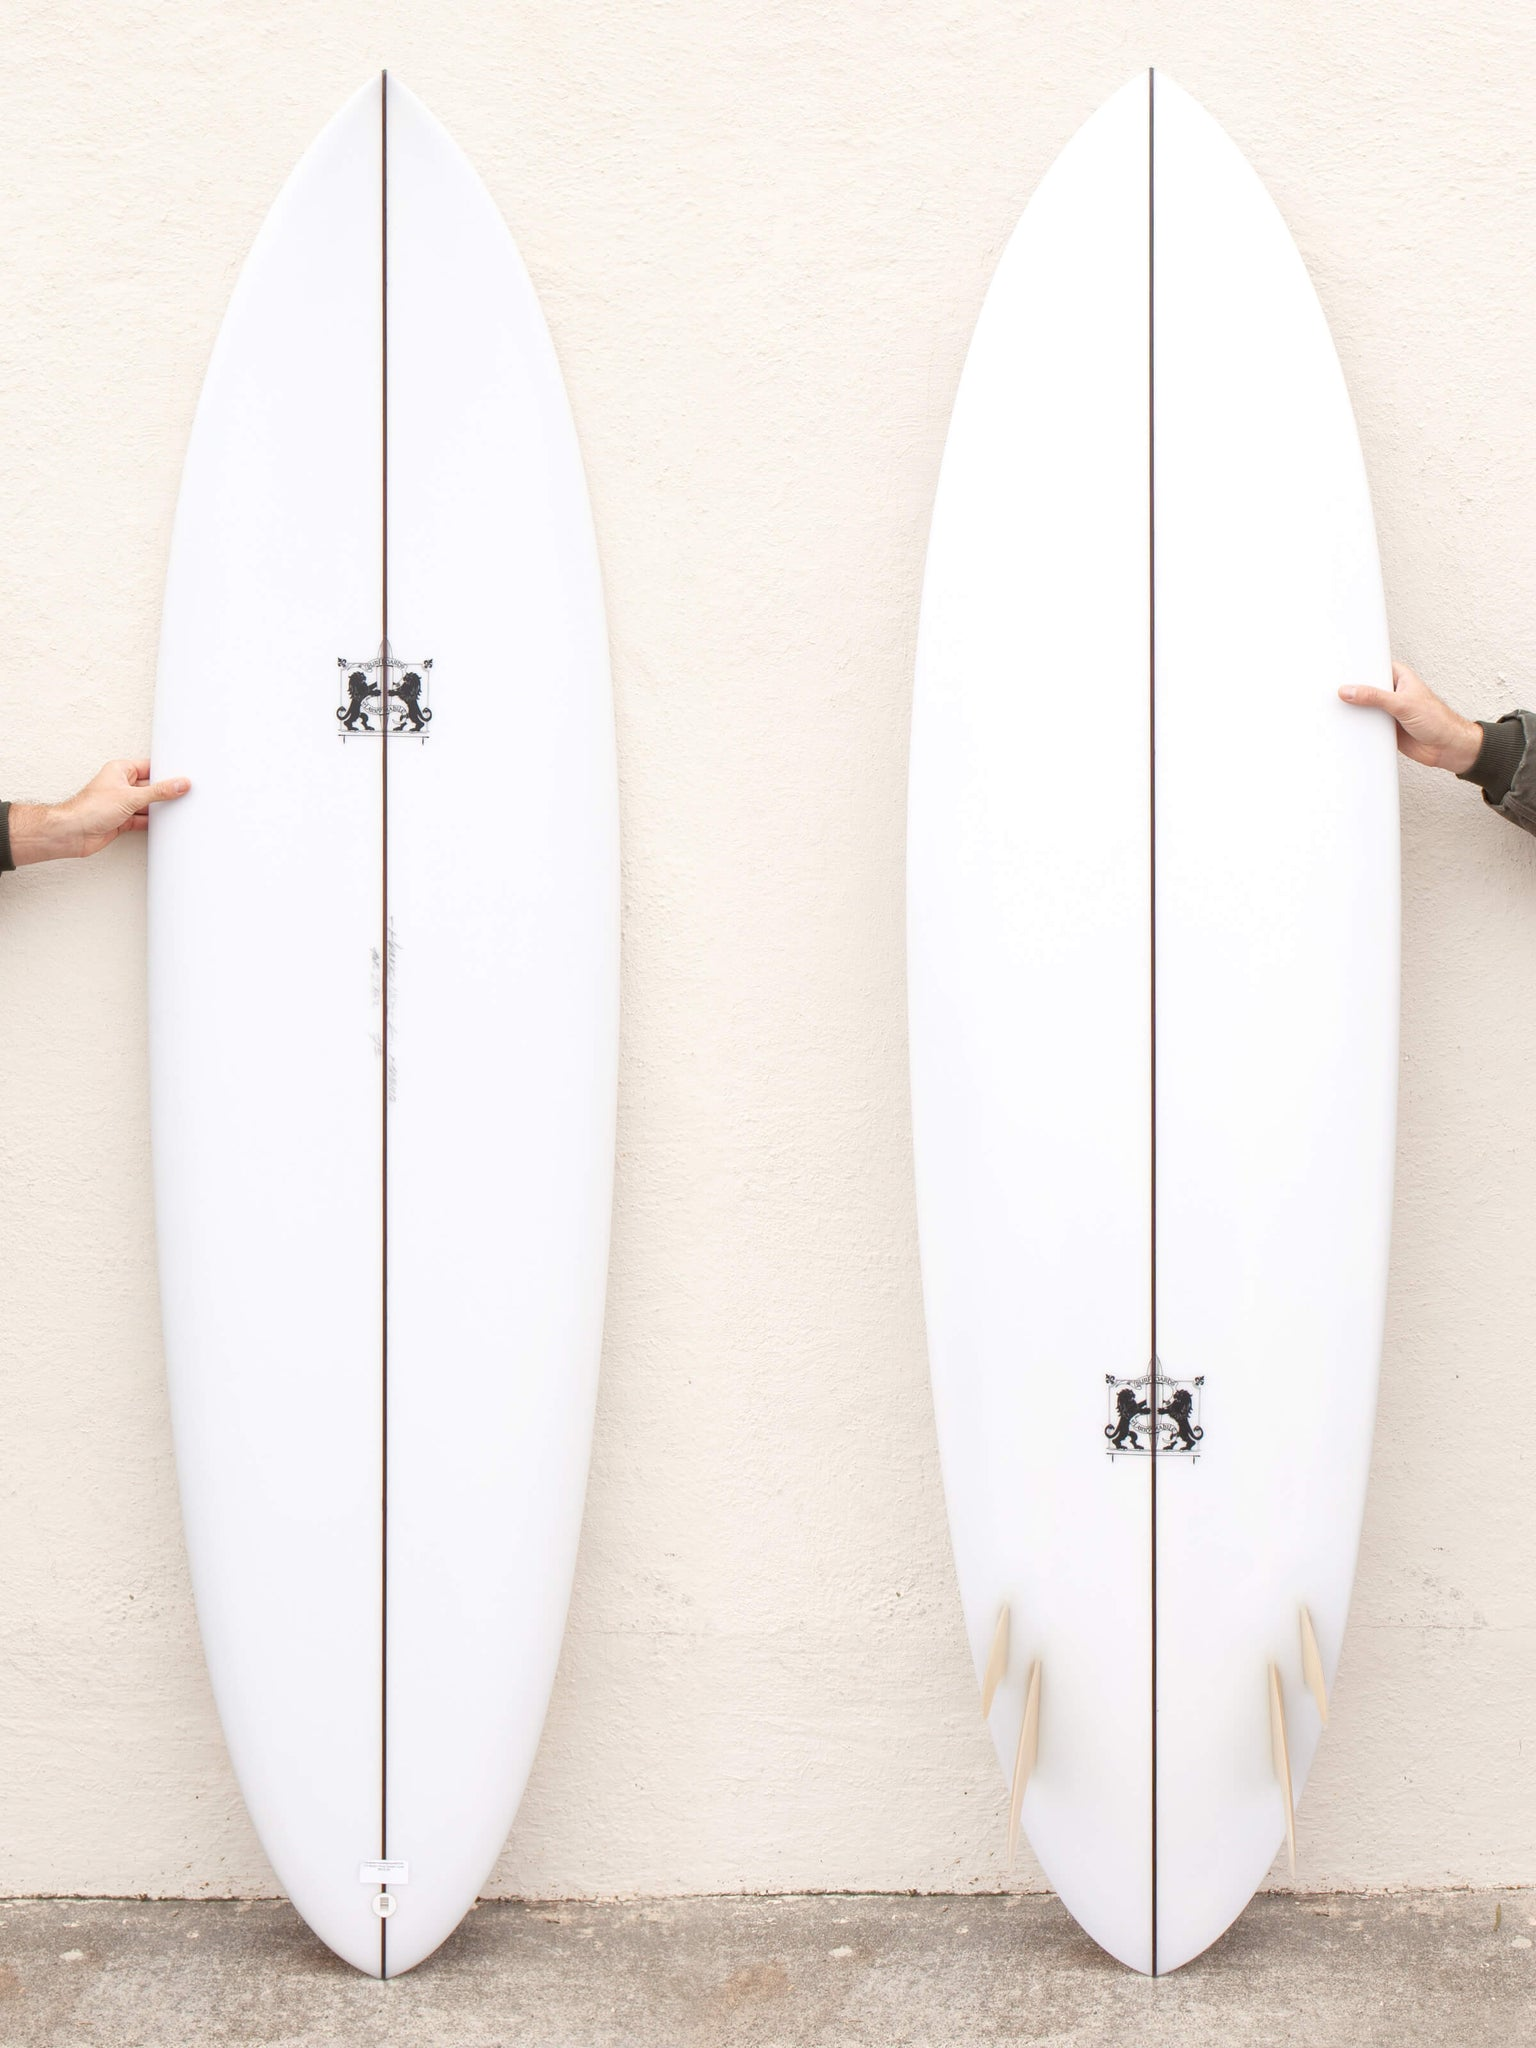 7'0 Mabile Twinzer Badger